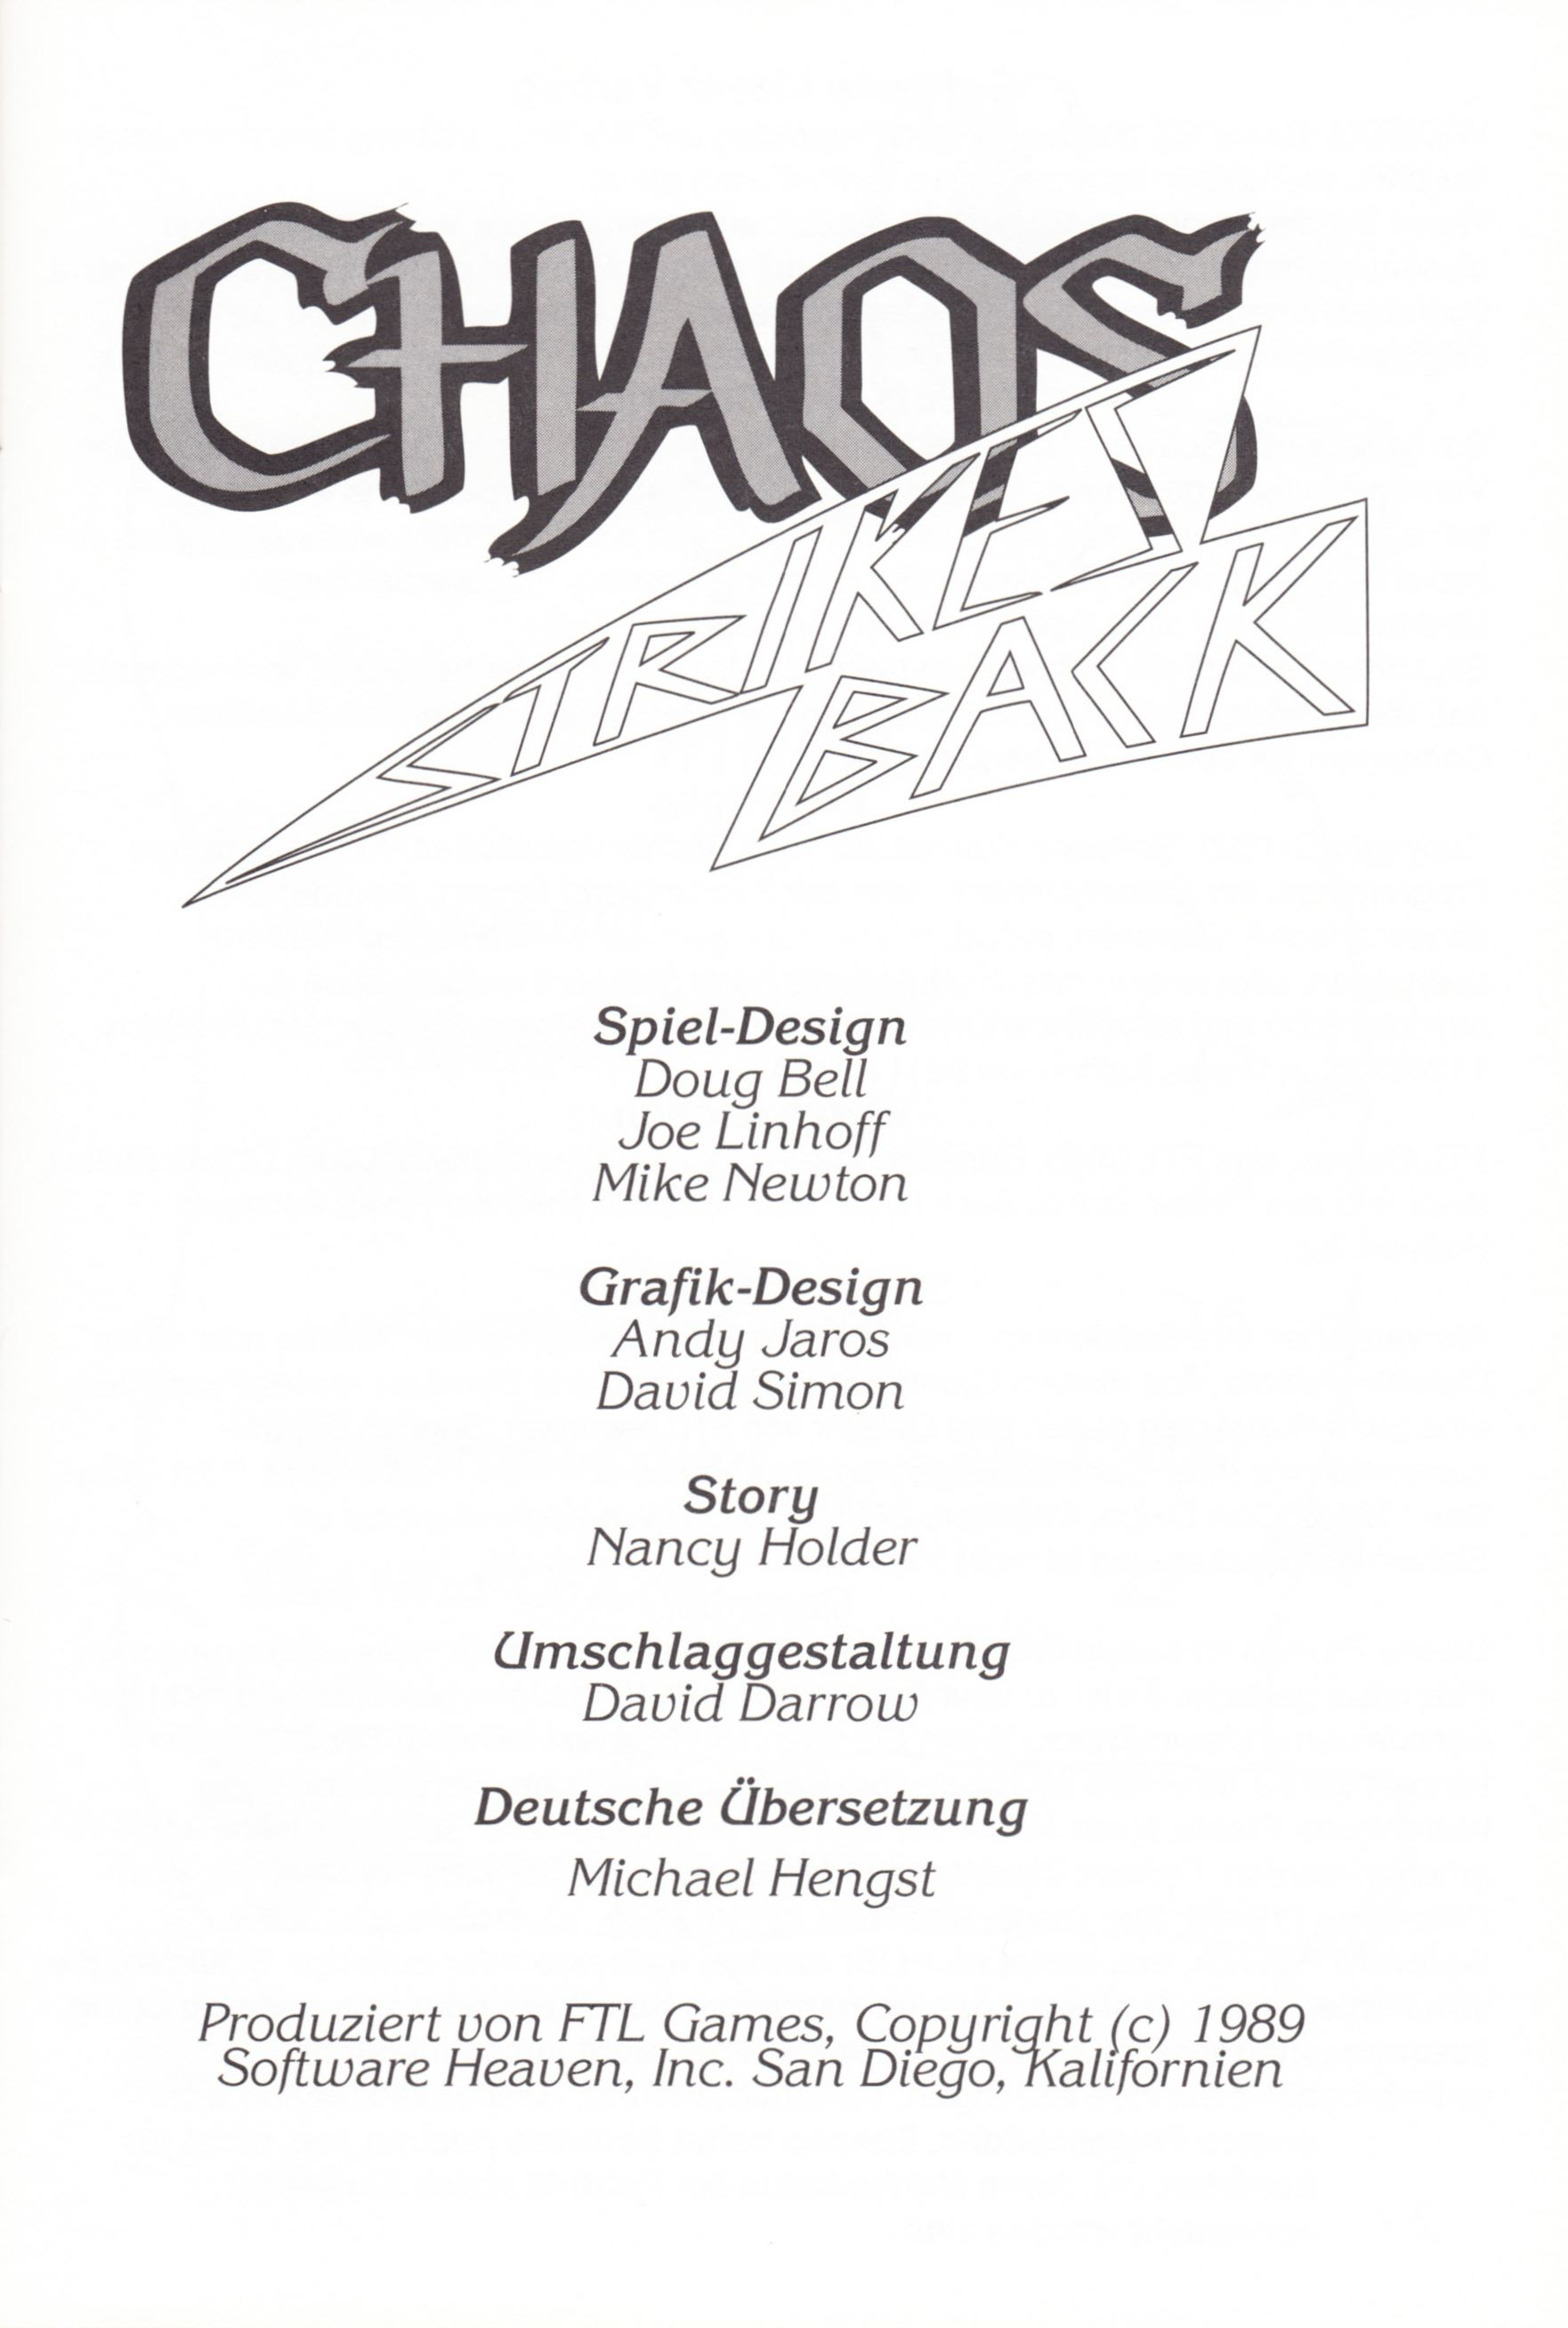 Game - Chaos Strikes Back - DE - Amiga - Manual - Page 003 - Scan